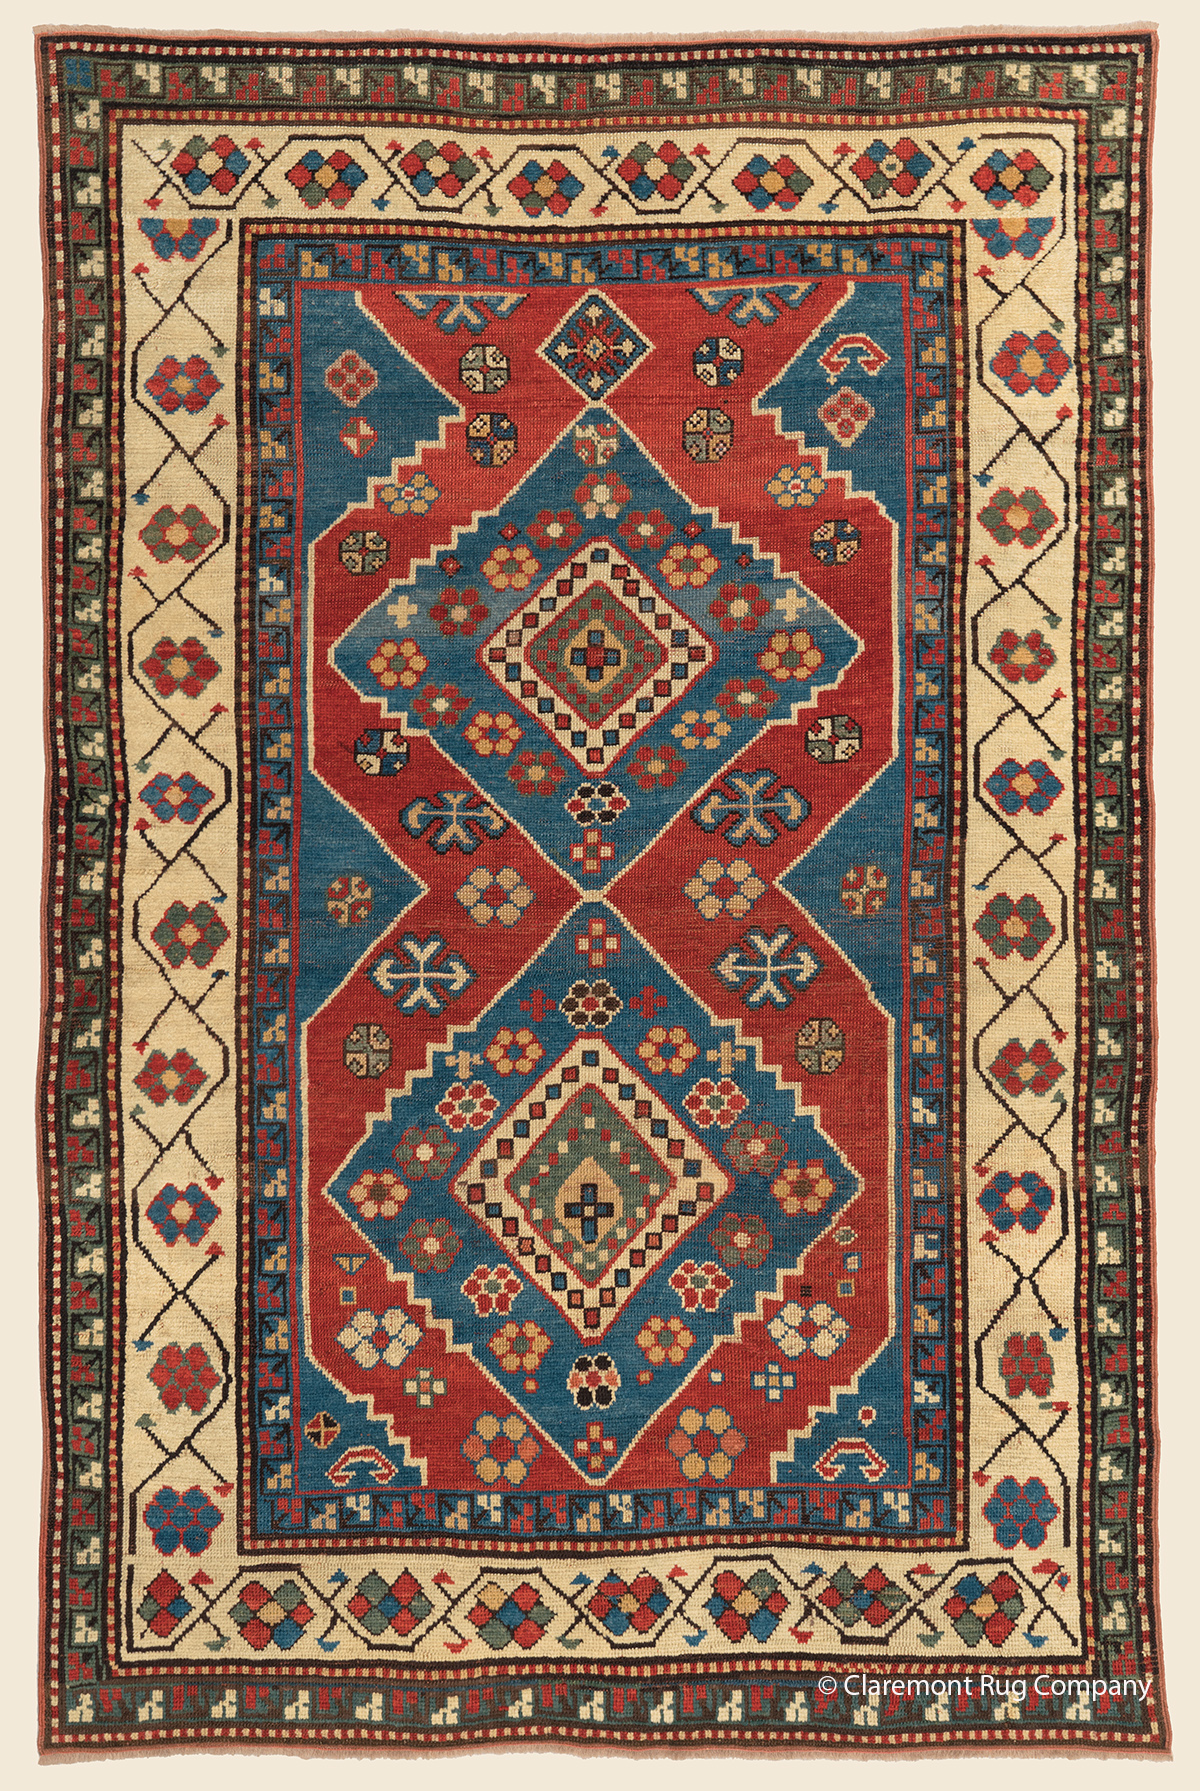 Geometric Caucasian Kazak Tribal Rug with two diamond medallions and tribal motifs